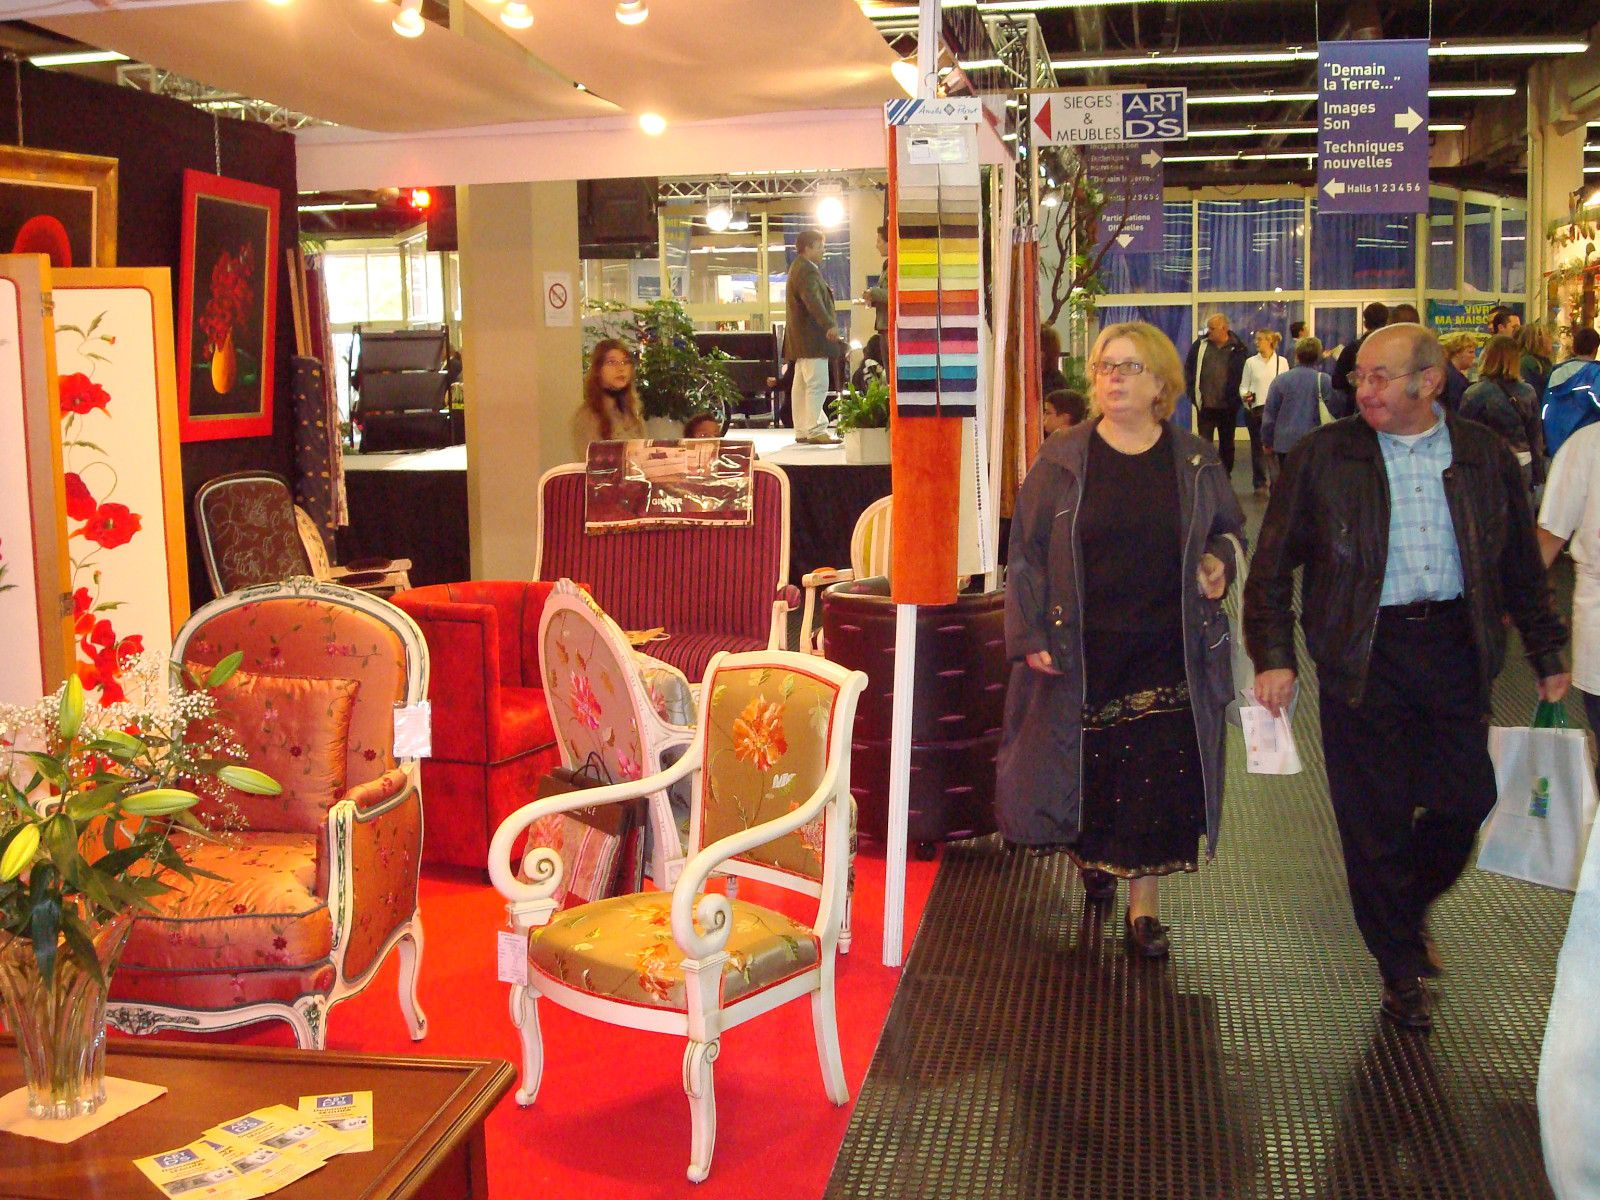 metz parc des expositions salon habitat et decoration 2010 rpl 89 2 la radio du pays lorrain. Black Bedroom Furniture Sets. Home Design Ideas